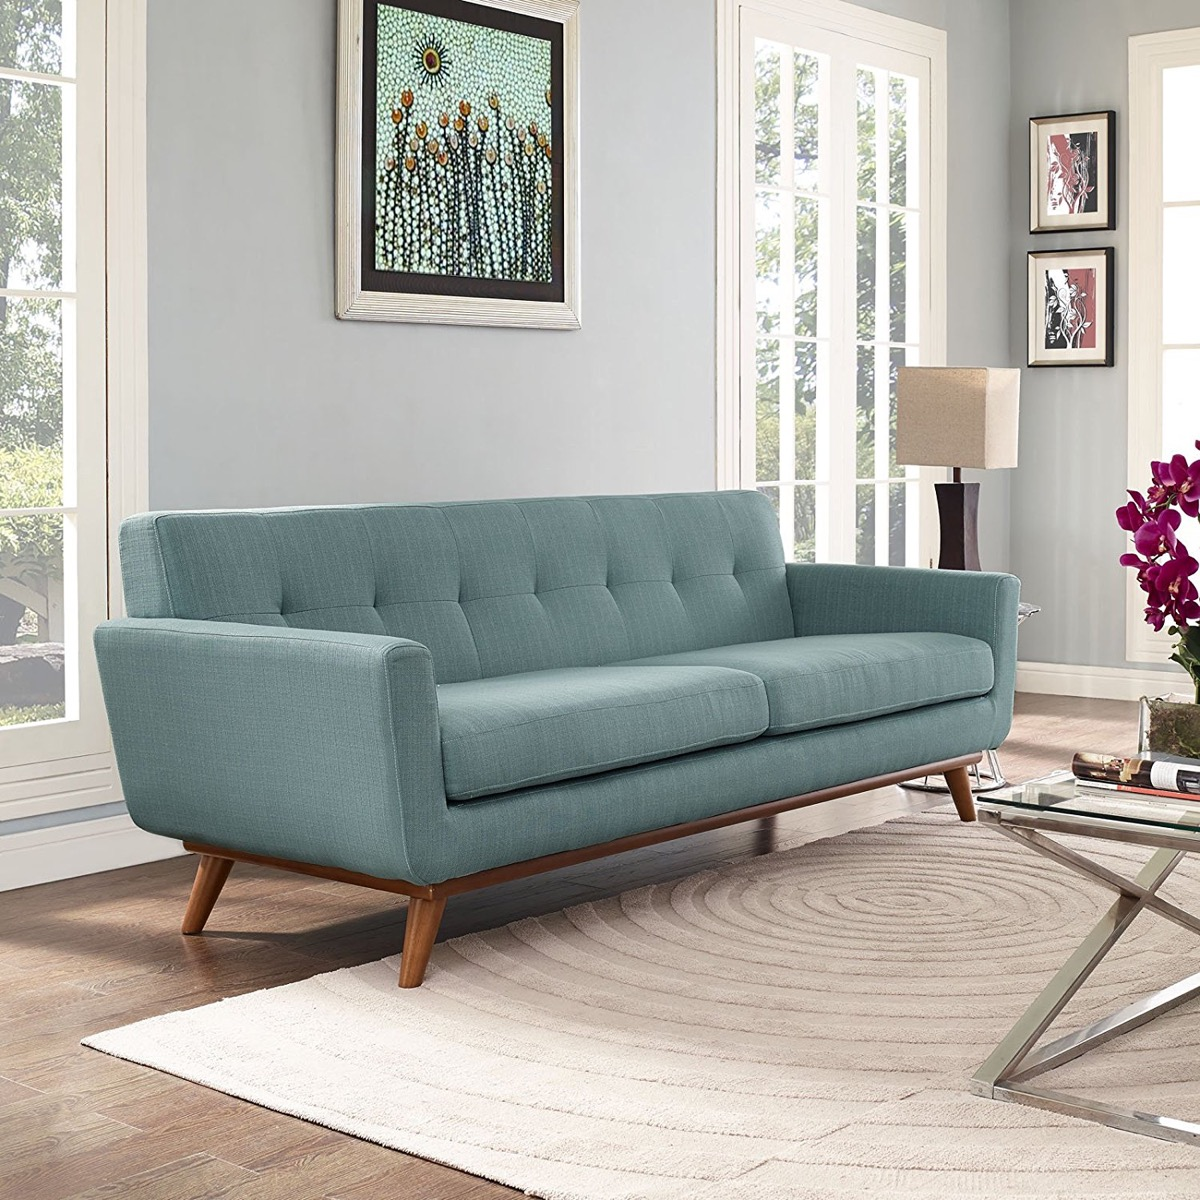 30 Mid Century Modern Sofas That Make Your Lounge Look The Era